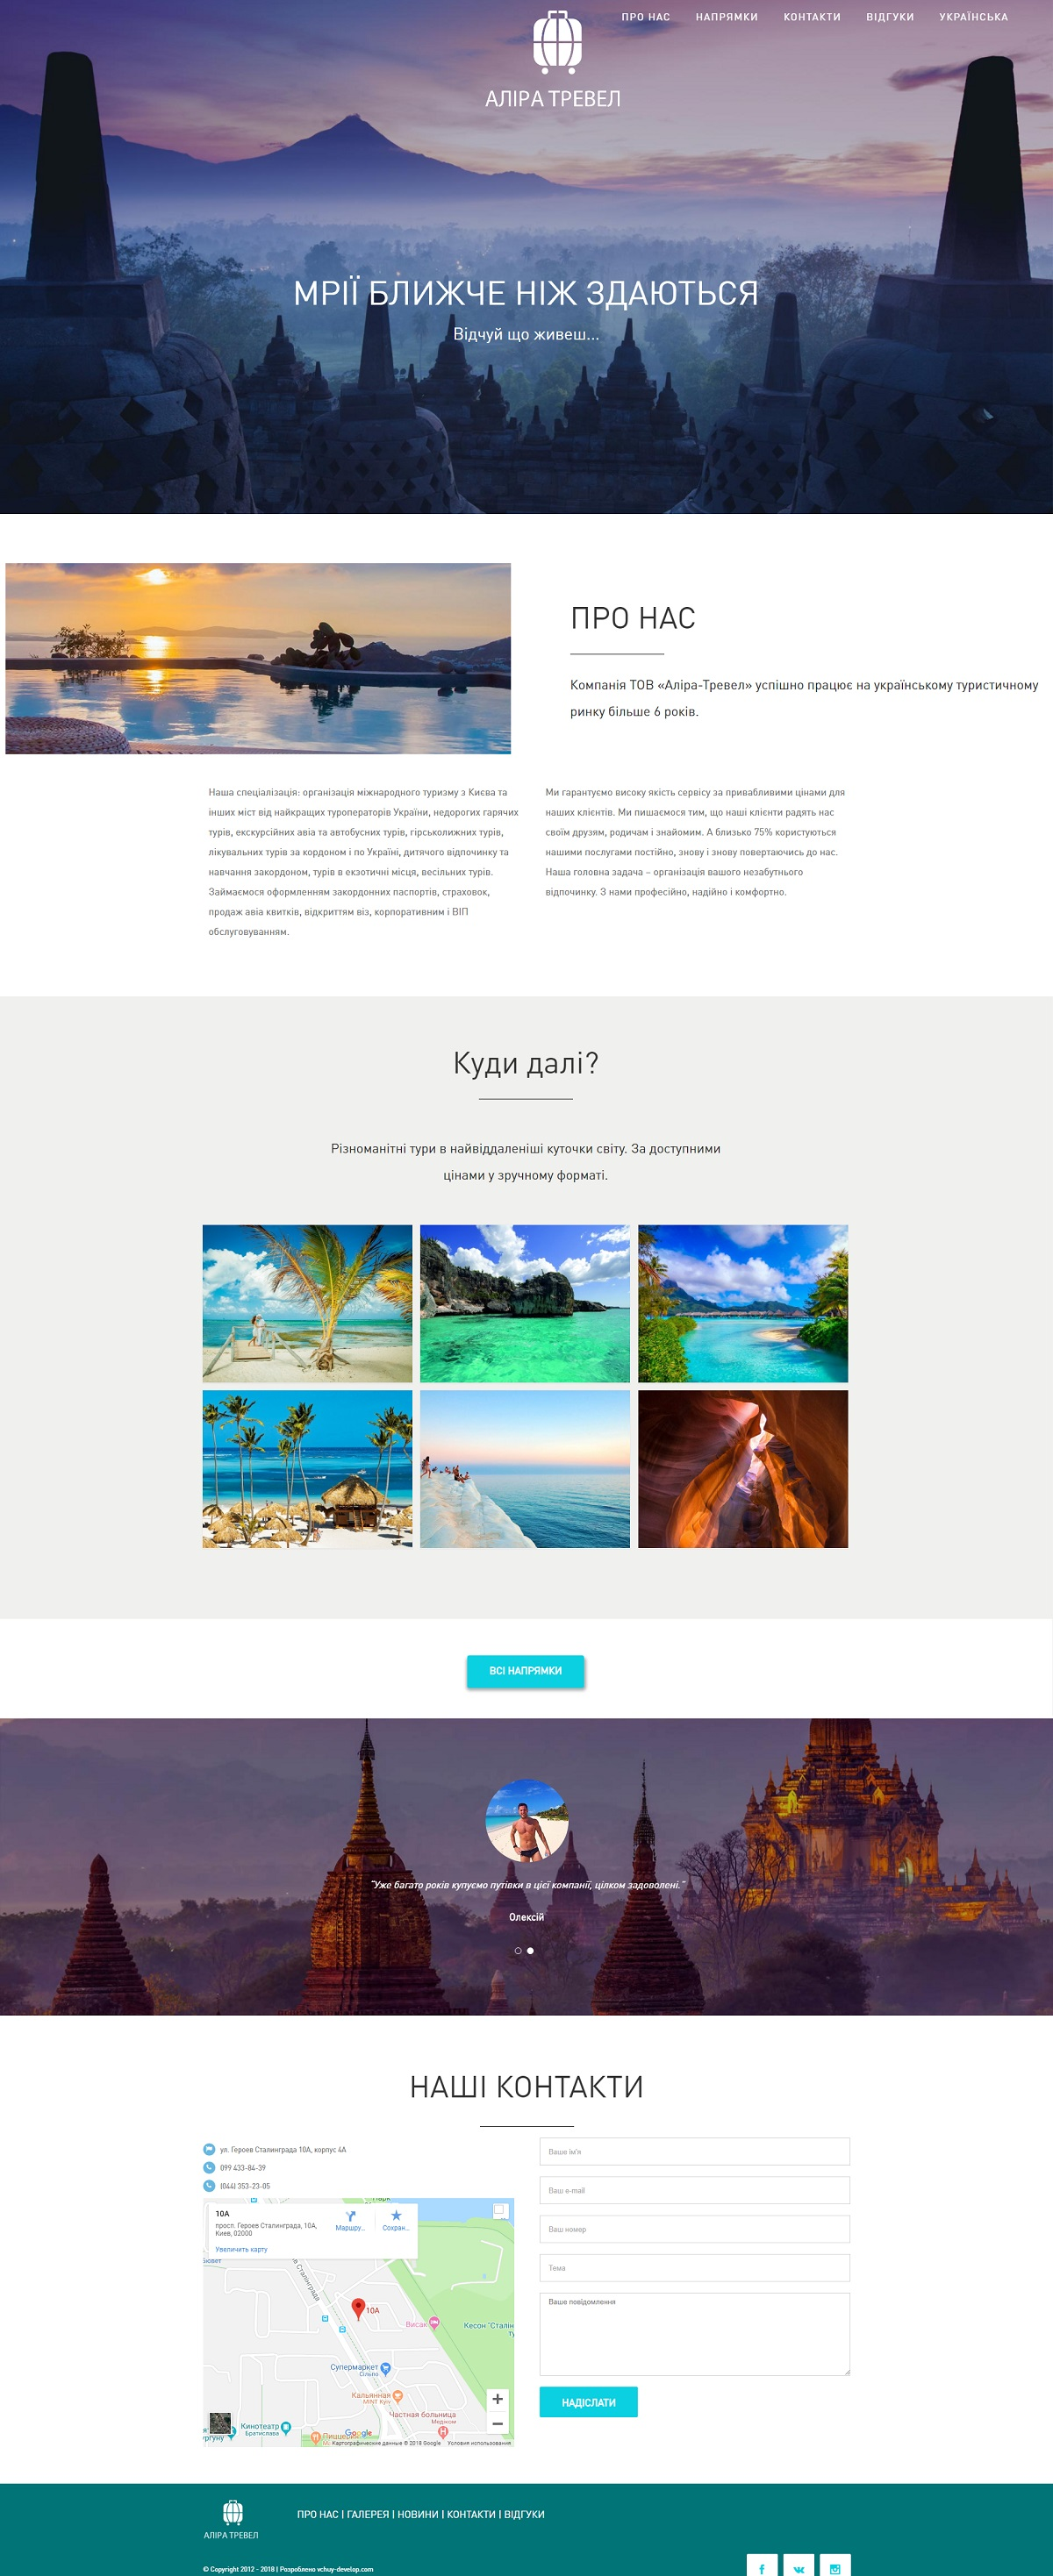 Alira-travel site